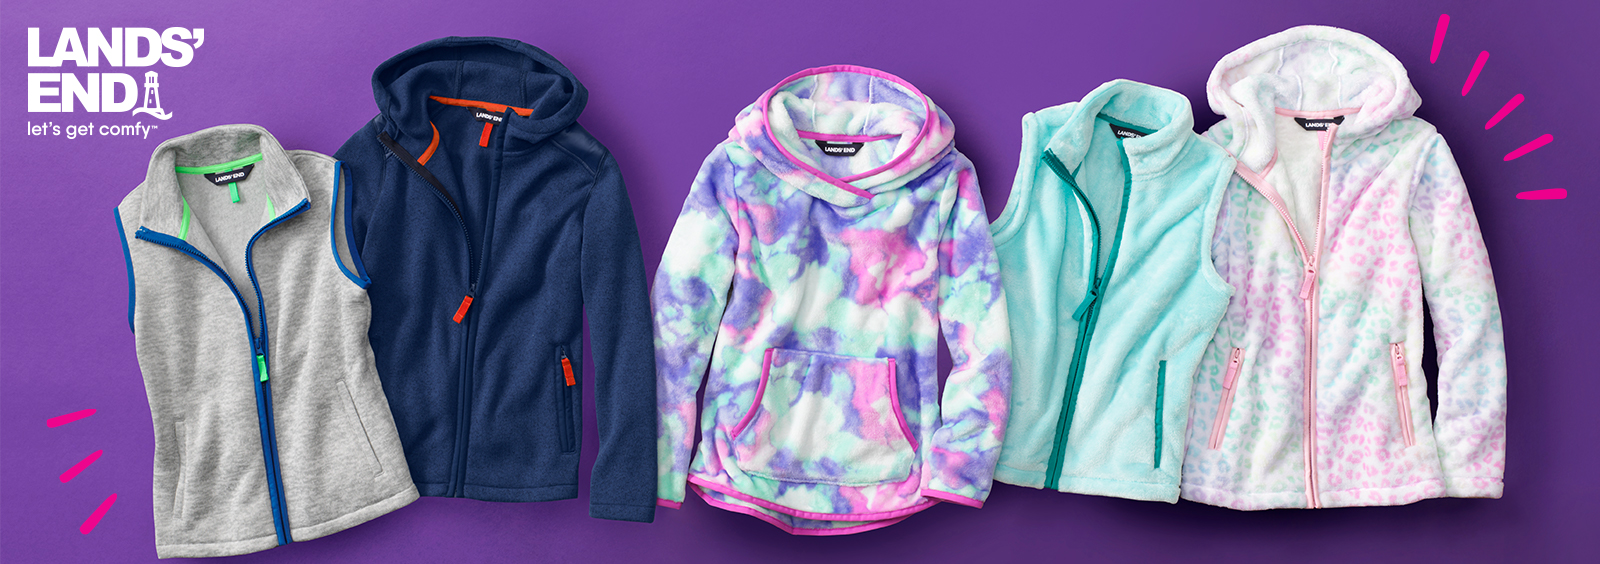 Best Coats to Buy for Kids This Fall